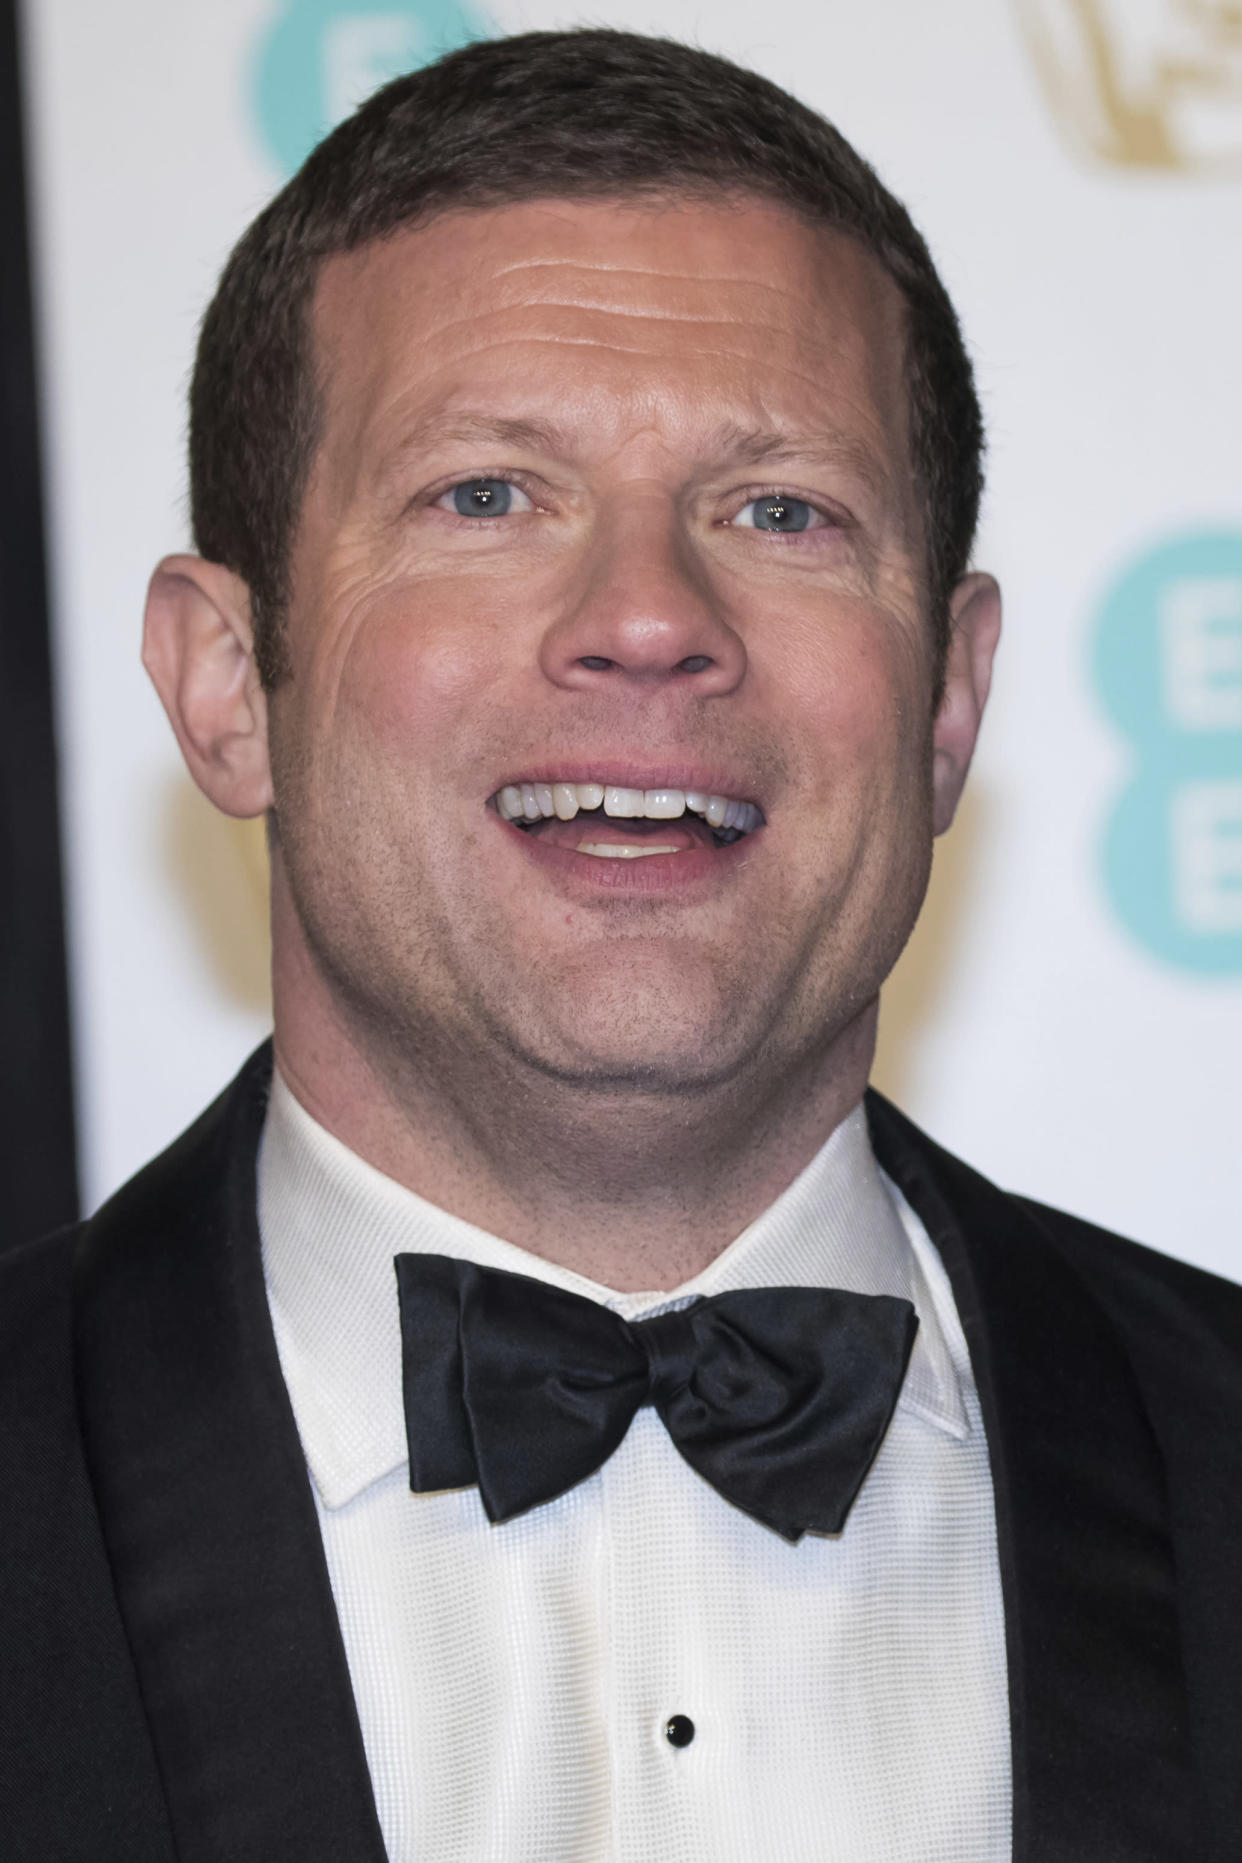 Dermot O'Leary poses for photographers upon arrival at the BAFTA Film Awards in London, Sunday, Feb. 10, 2019. (Photo by Vianney Le Caer/Invision/AP)